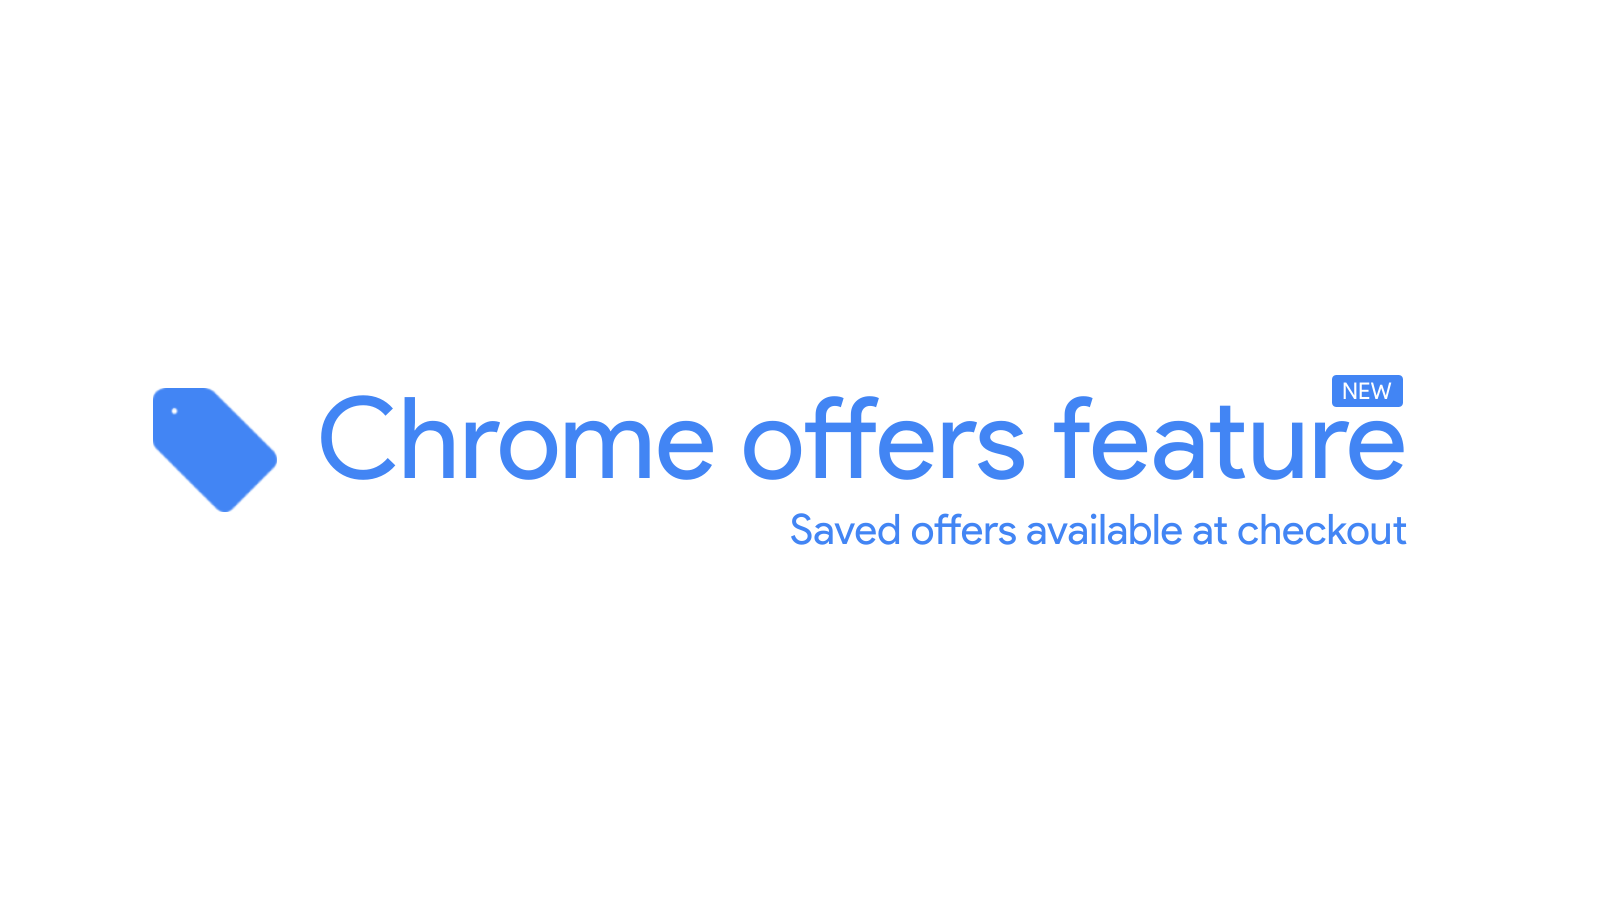 Chrome gains an 'Offers' button so you can save money at checkout without an extension